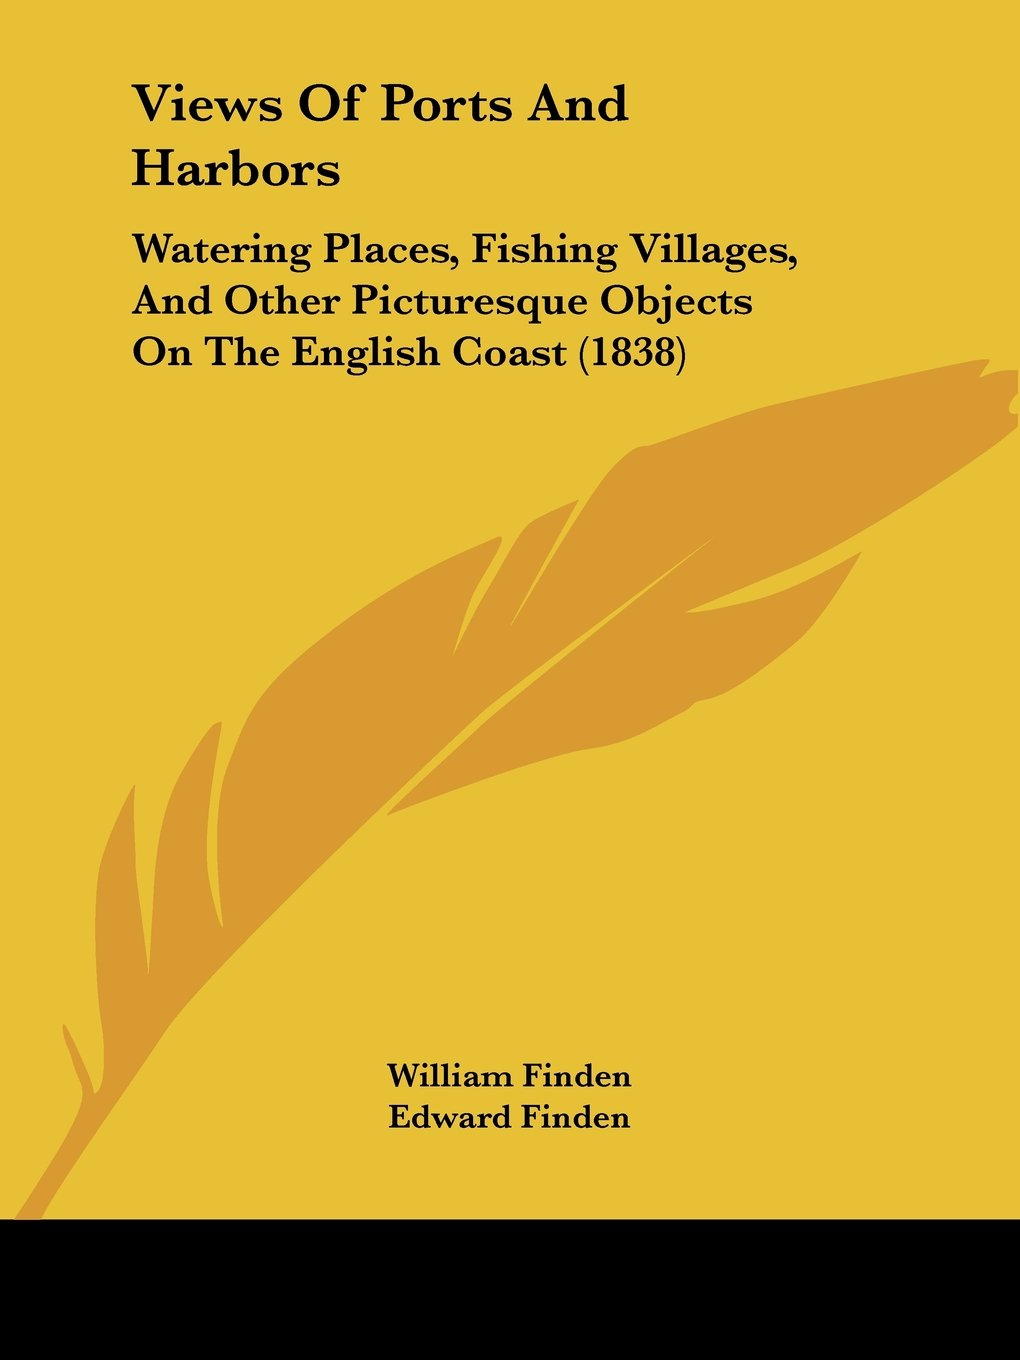 Views Of Ports And Harbors: Watering Places, Fishing Villages, And Other Picturesque Objects On The English Coast (1838) pdf epub